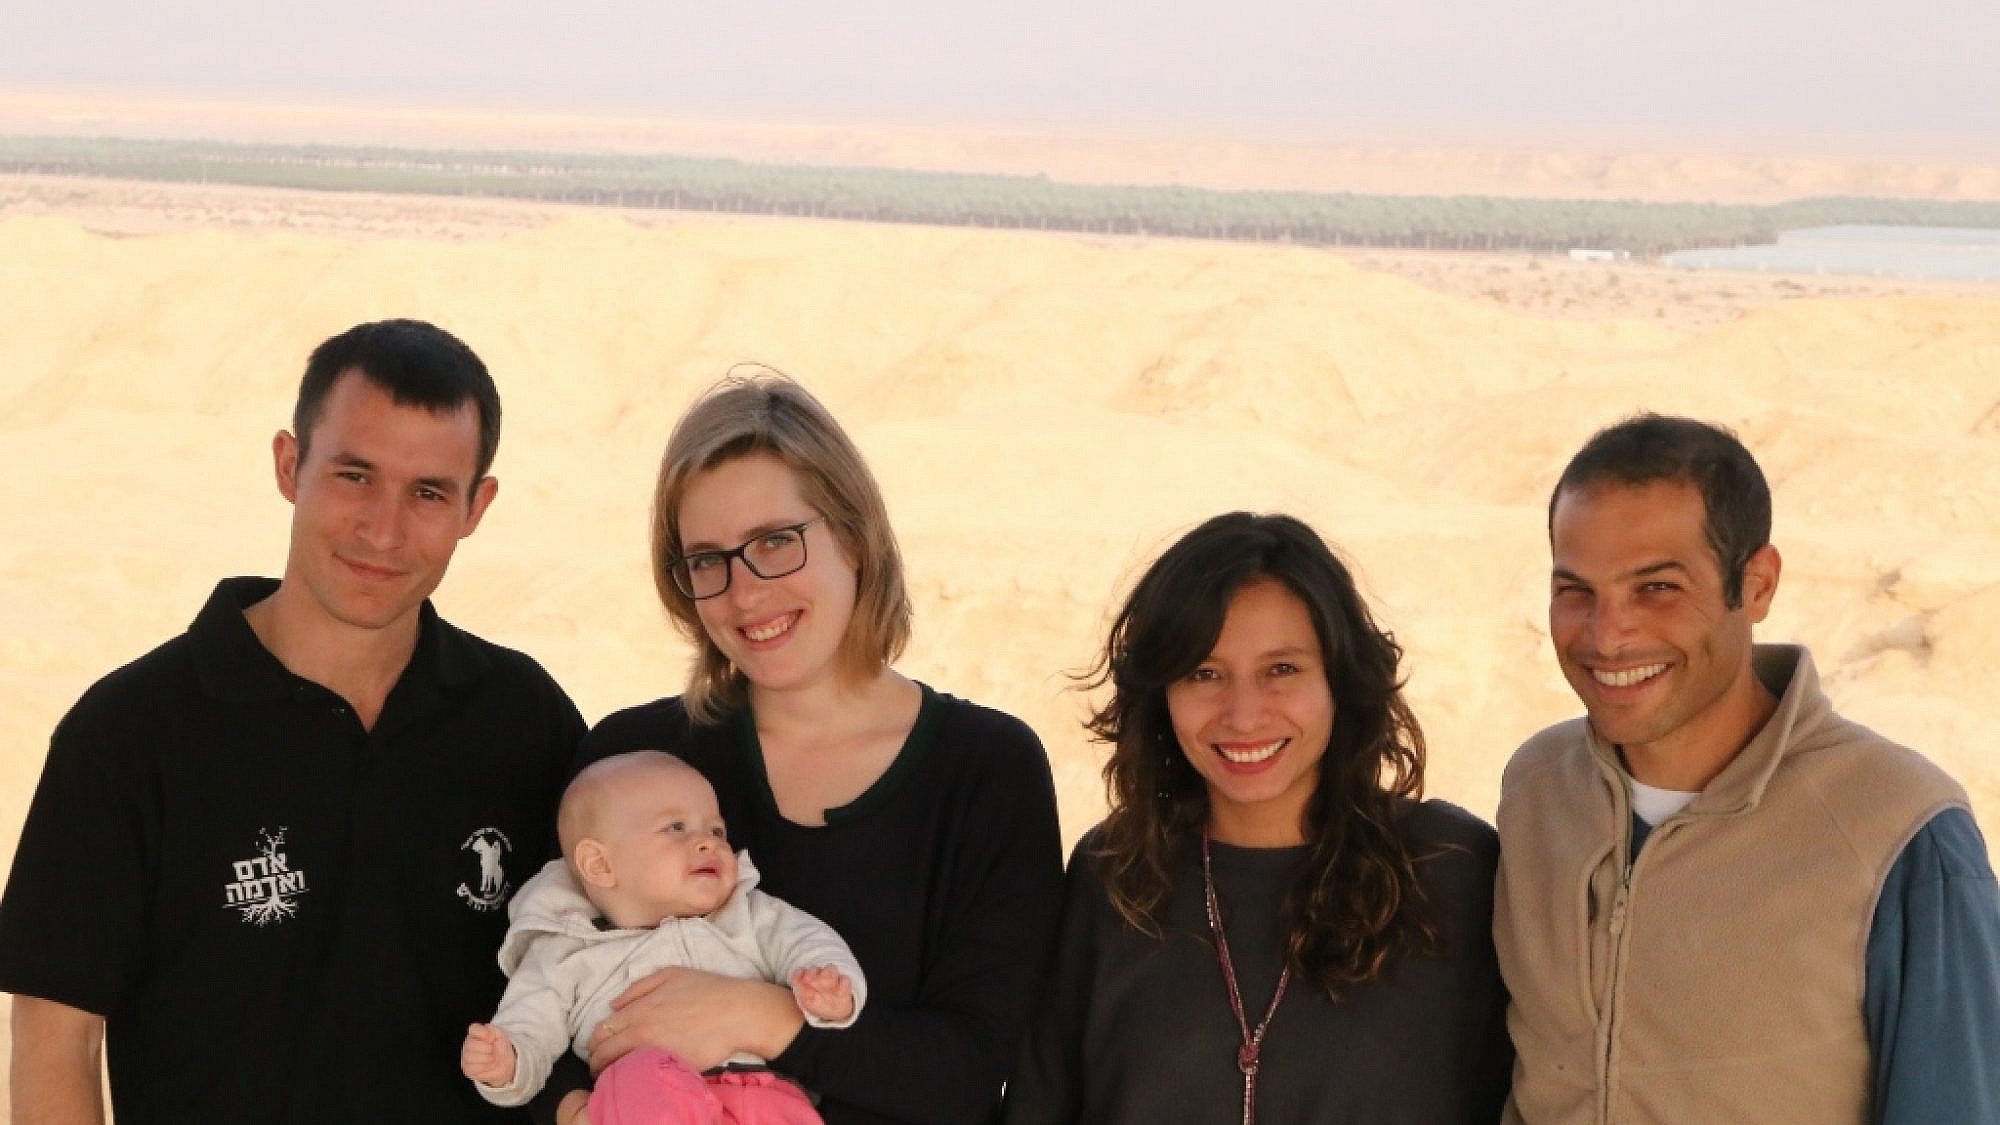 From left to right: Amit and Yael (with their baby) and Samantha and Idan. Credit: Jewish National Fund.